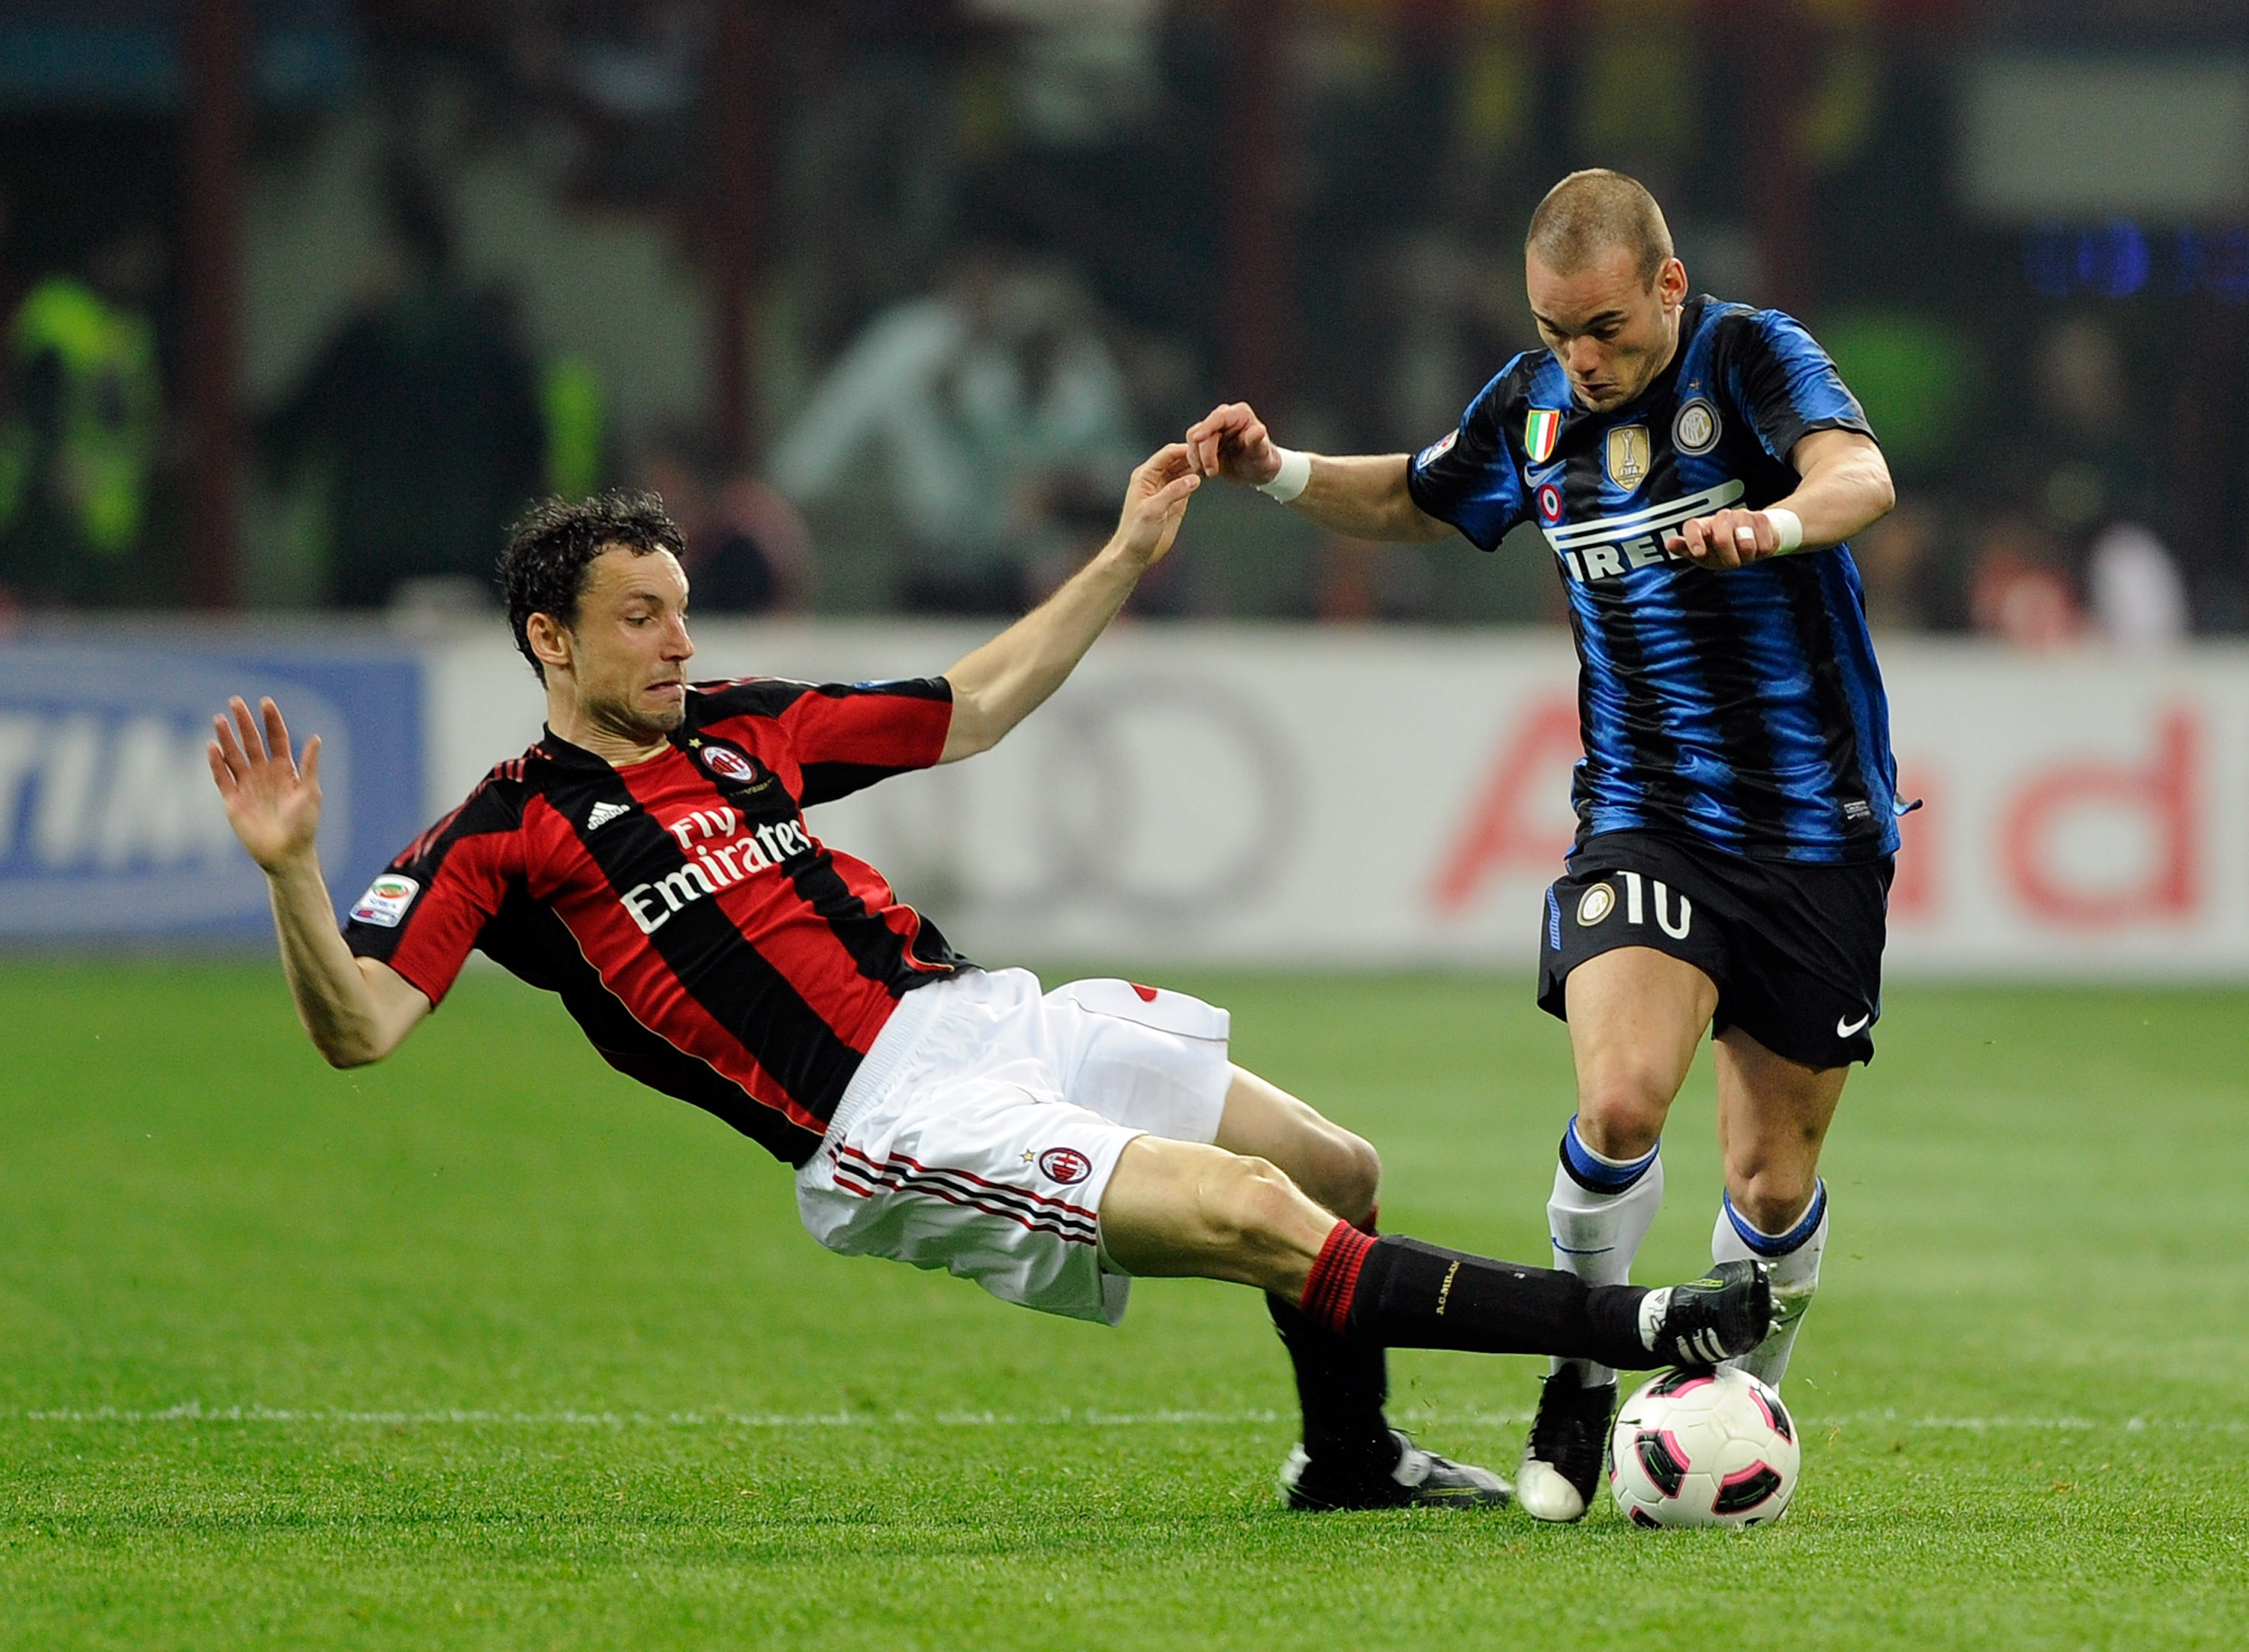 MILAN, ITALY - APRIL 02:  Wesley Sneijder of FC Inter Milan and Mark Van Bommel of AC Milan during the Serie A match between AC Milan and FC Internazionale Milano at Stadio Giuseppe Meazza on April 2, 2011 in Milan, Italy.  (Photo by Claudio Villa/Getty I